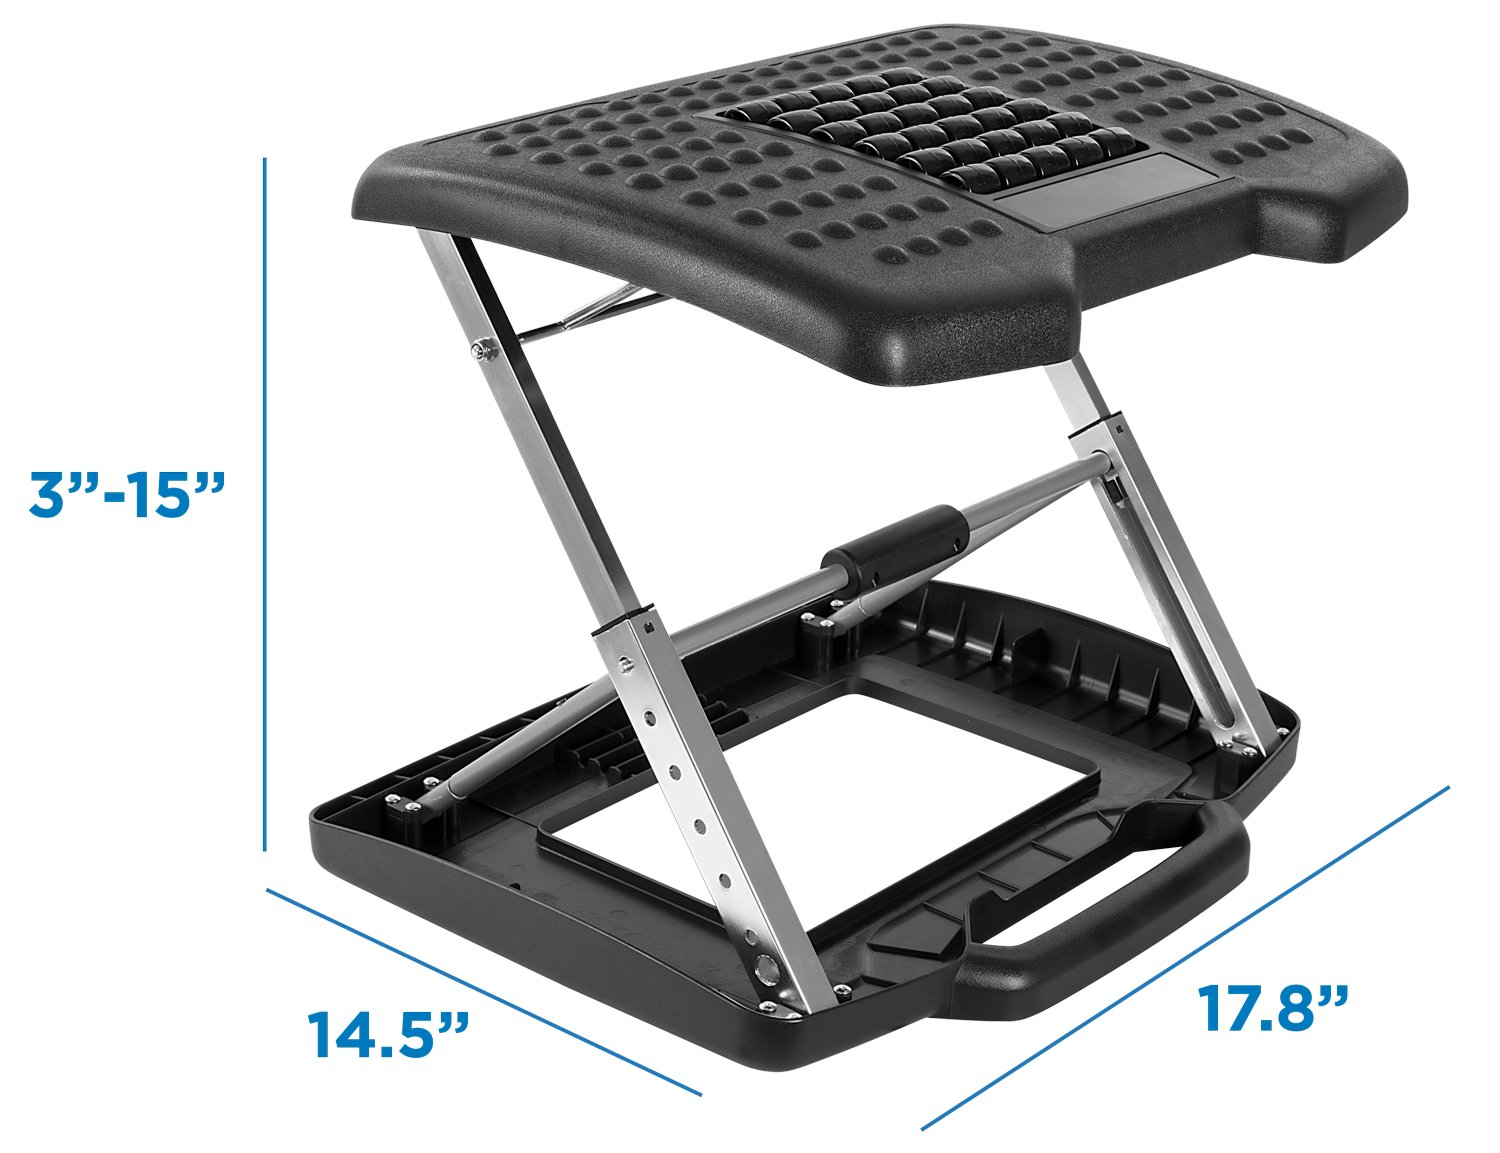 Mount-It! Adjustable Footrest with Massaging Beads Adjustable Height and Angle Office Foot Rest Stool for Under Desk Support, 3-Level Height Adjustment, Black by Mount-It! (Image #6)